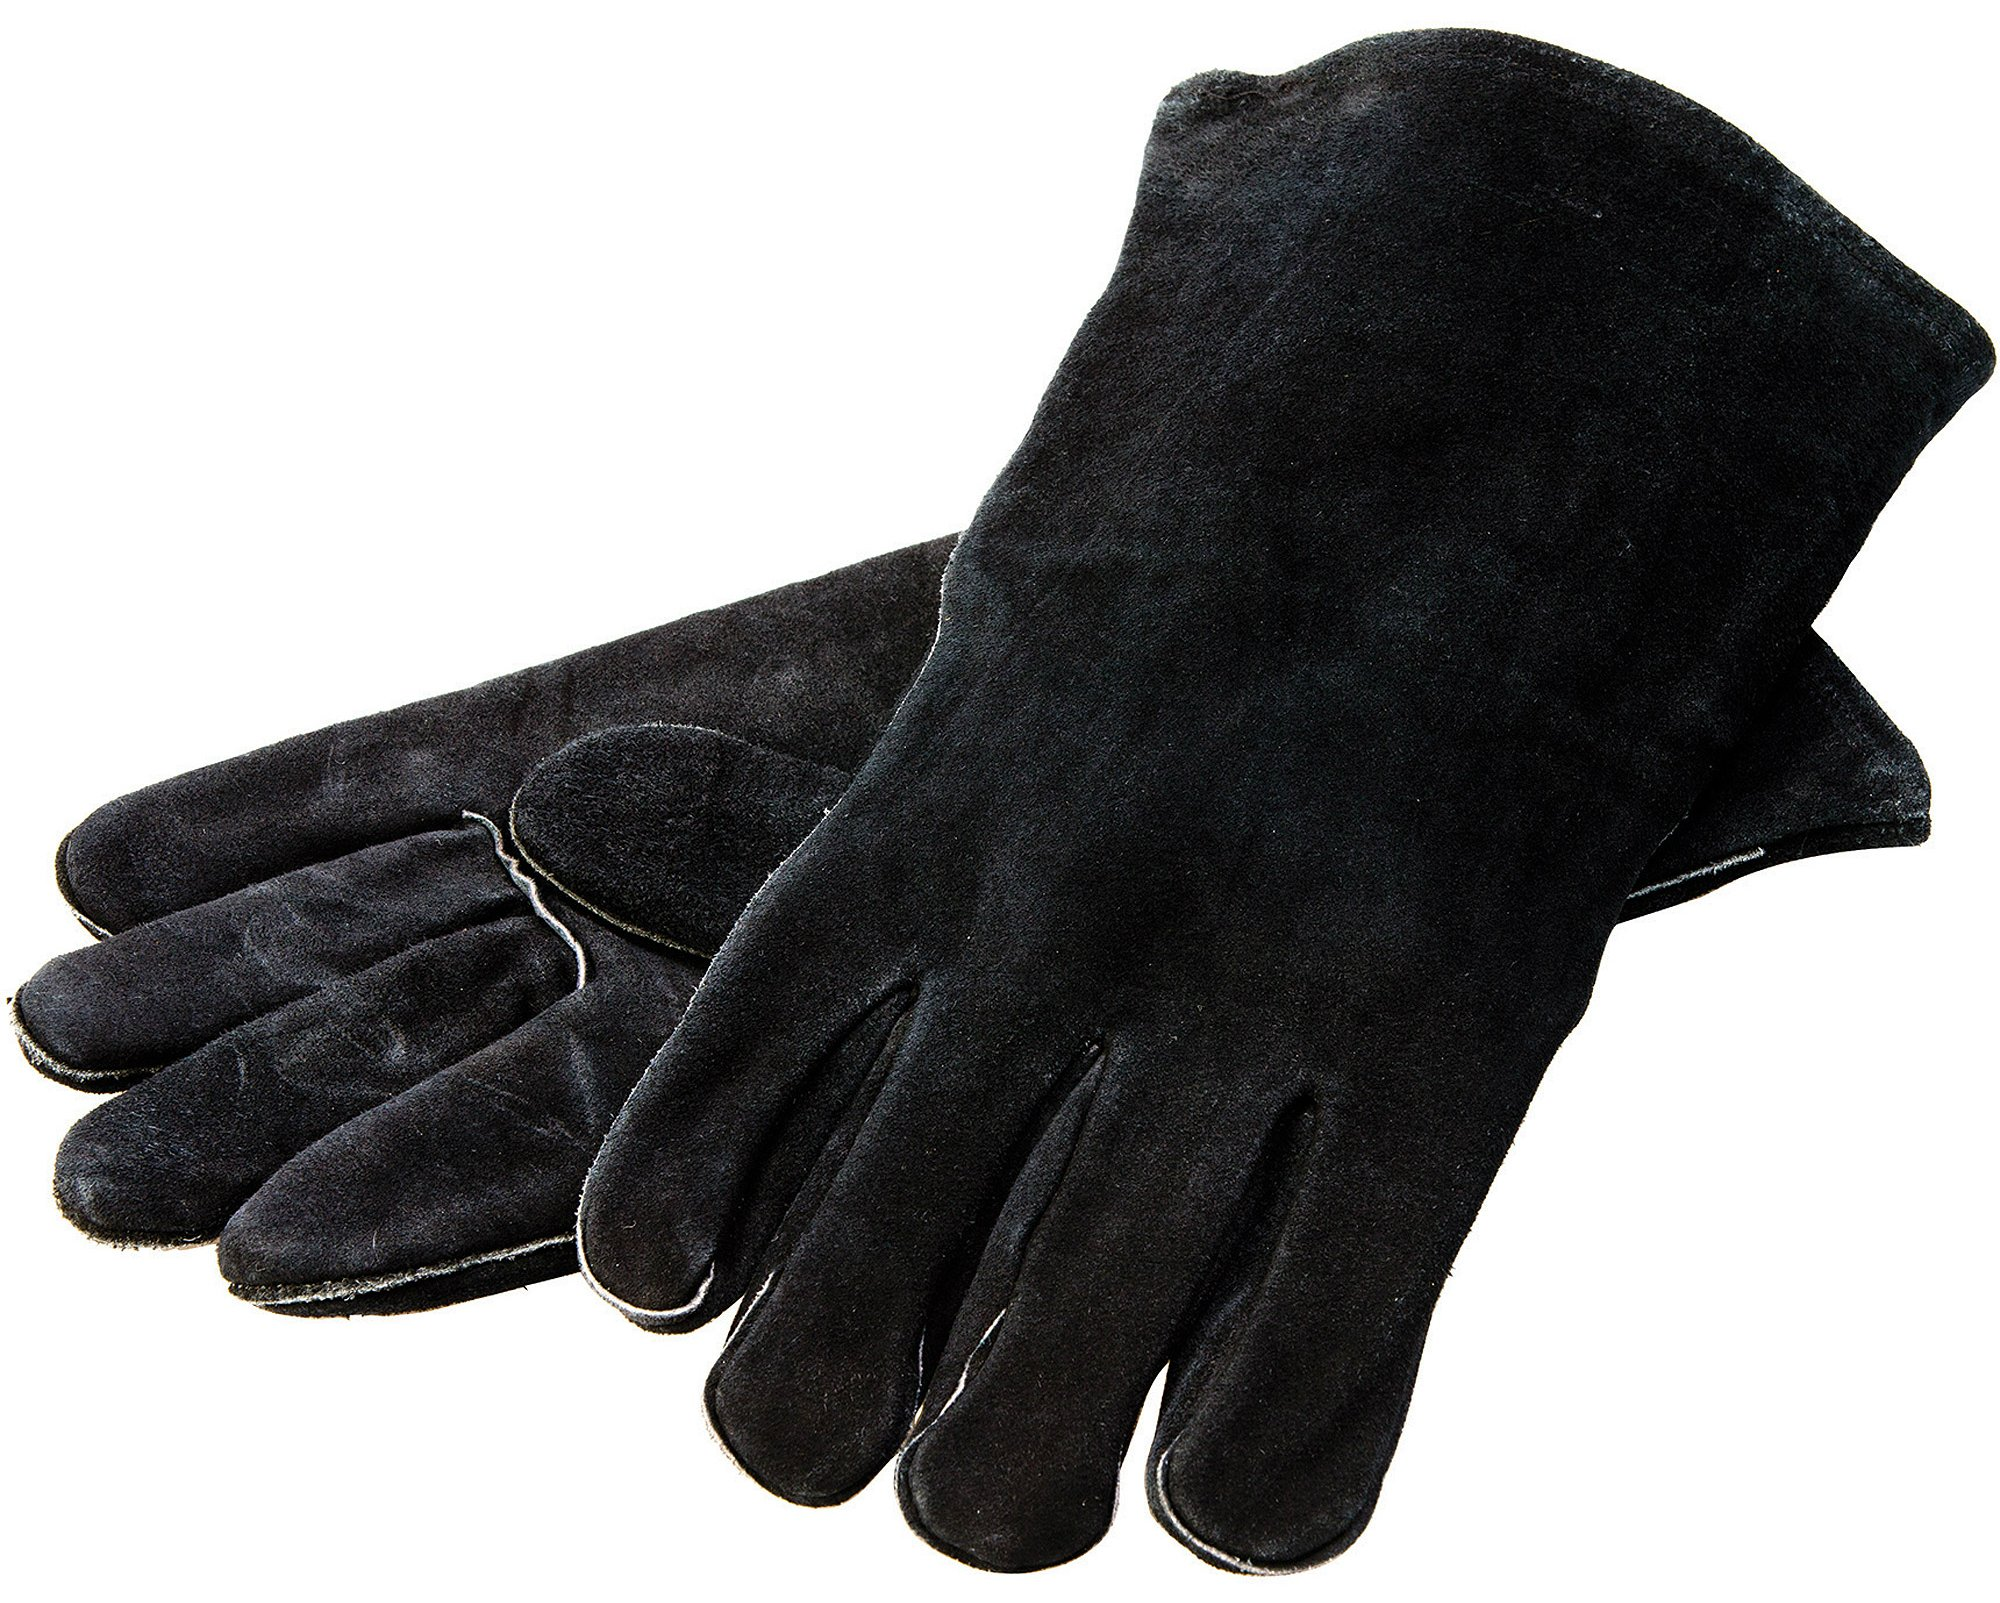 Lodge 14.5'' Leather Outdoor Cooking  Gloves -  Heat Resistant Gloves for Cast Iron Cooking